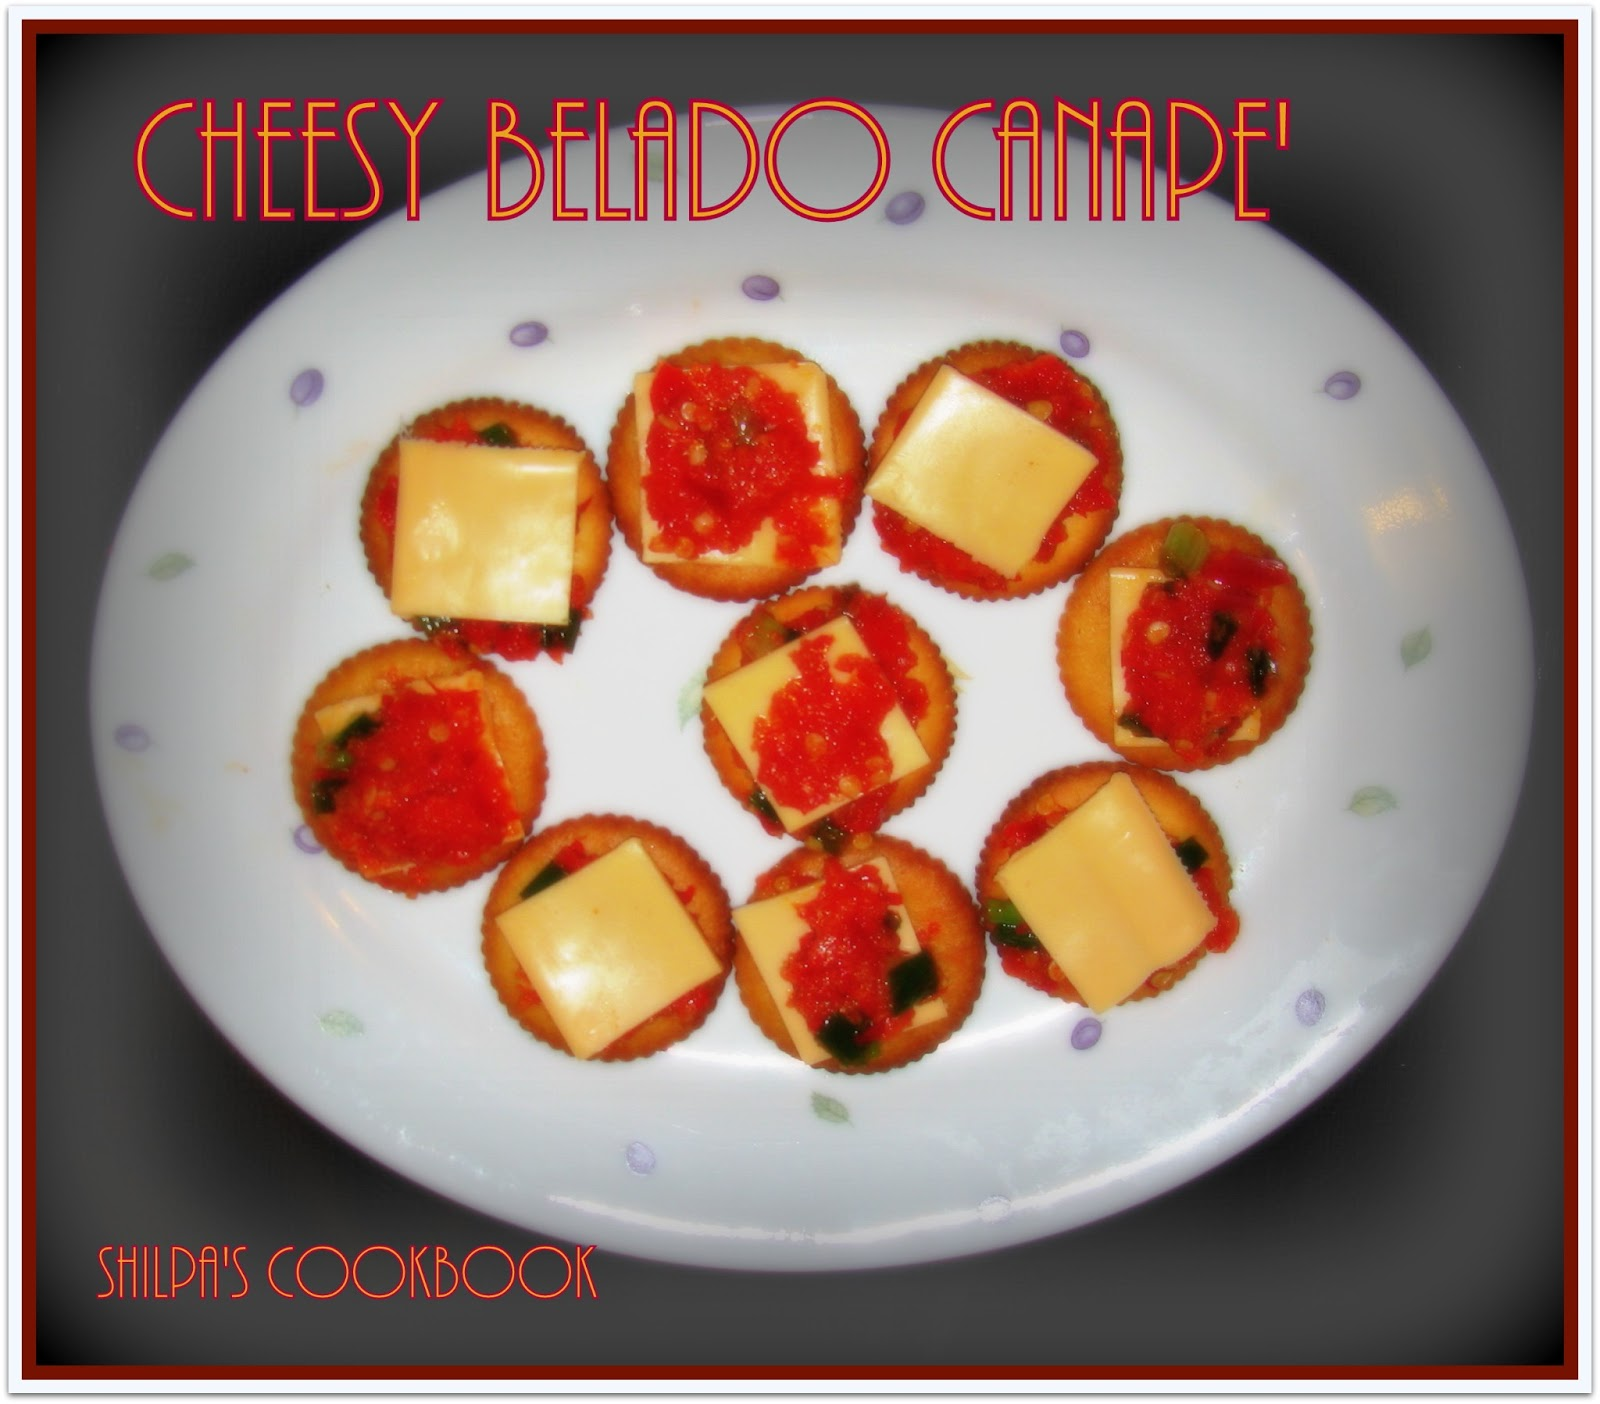 Cook book cheesy belado canape 39 for Canape cookbook